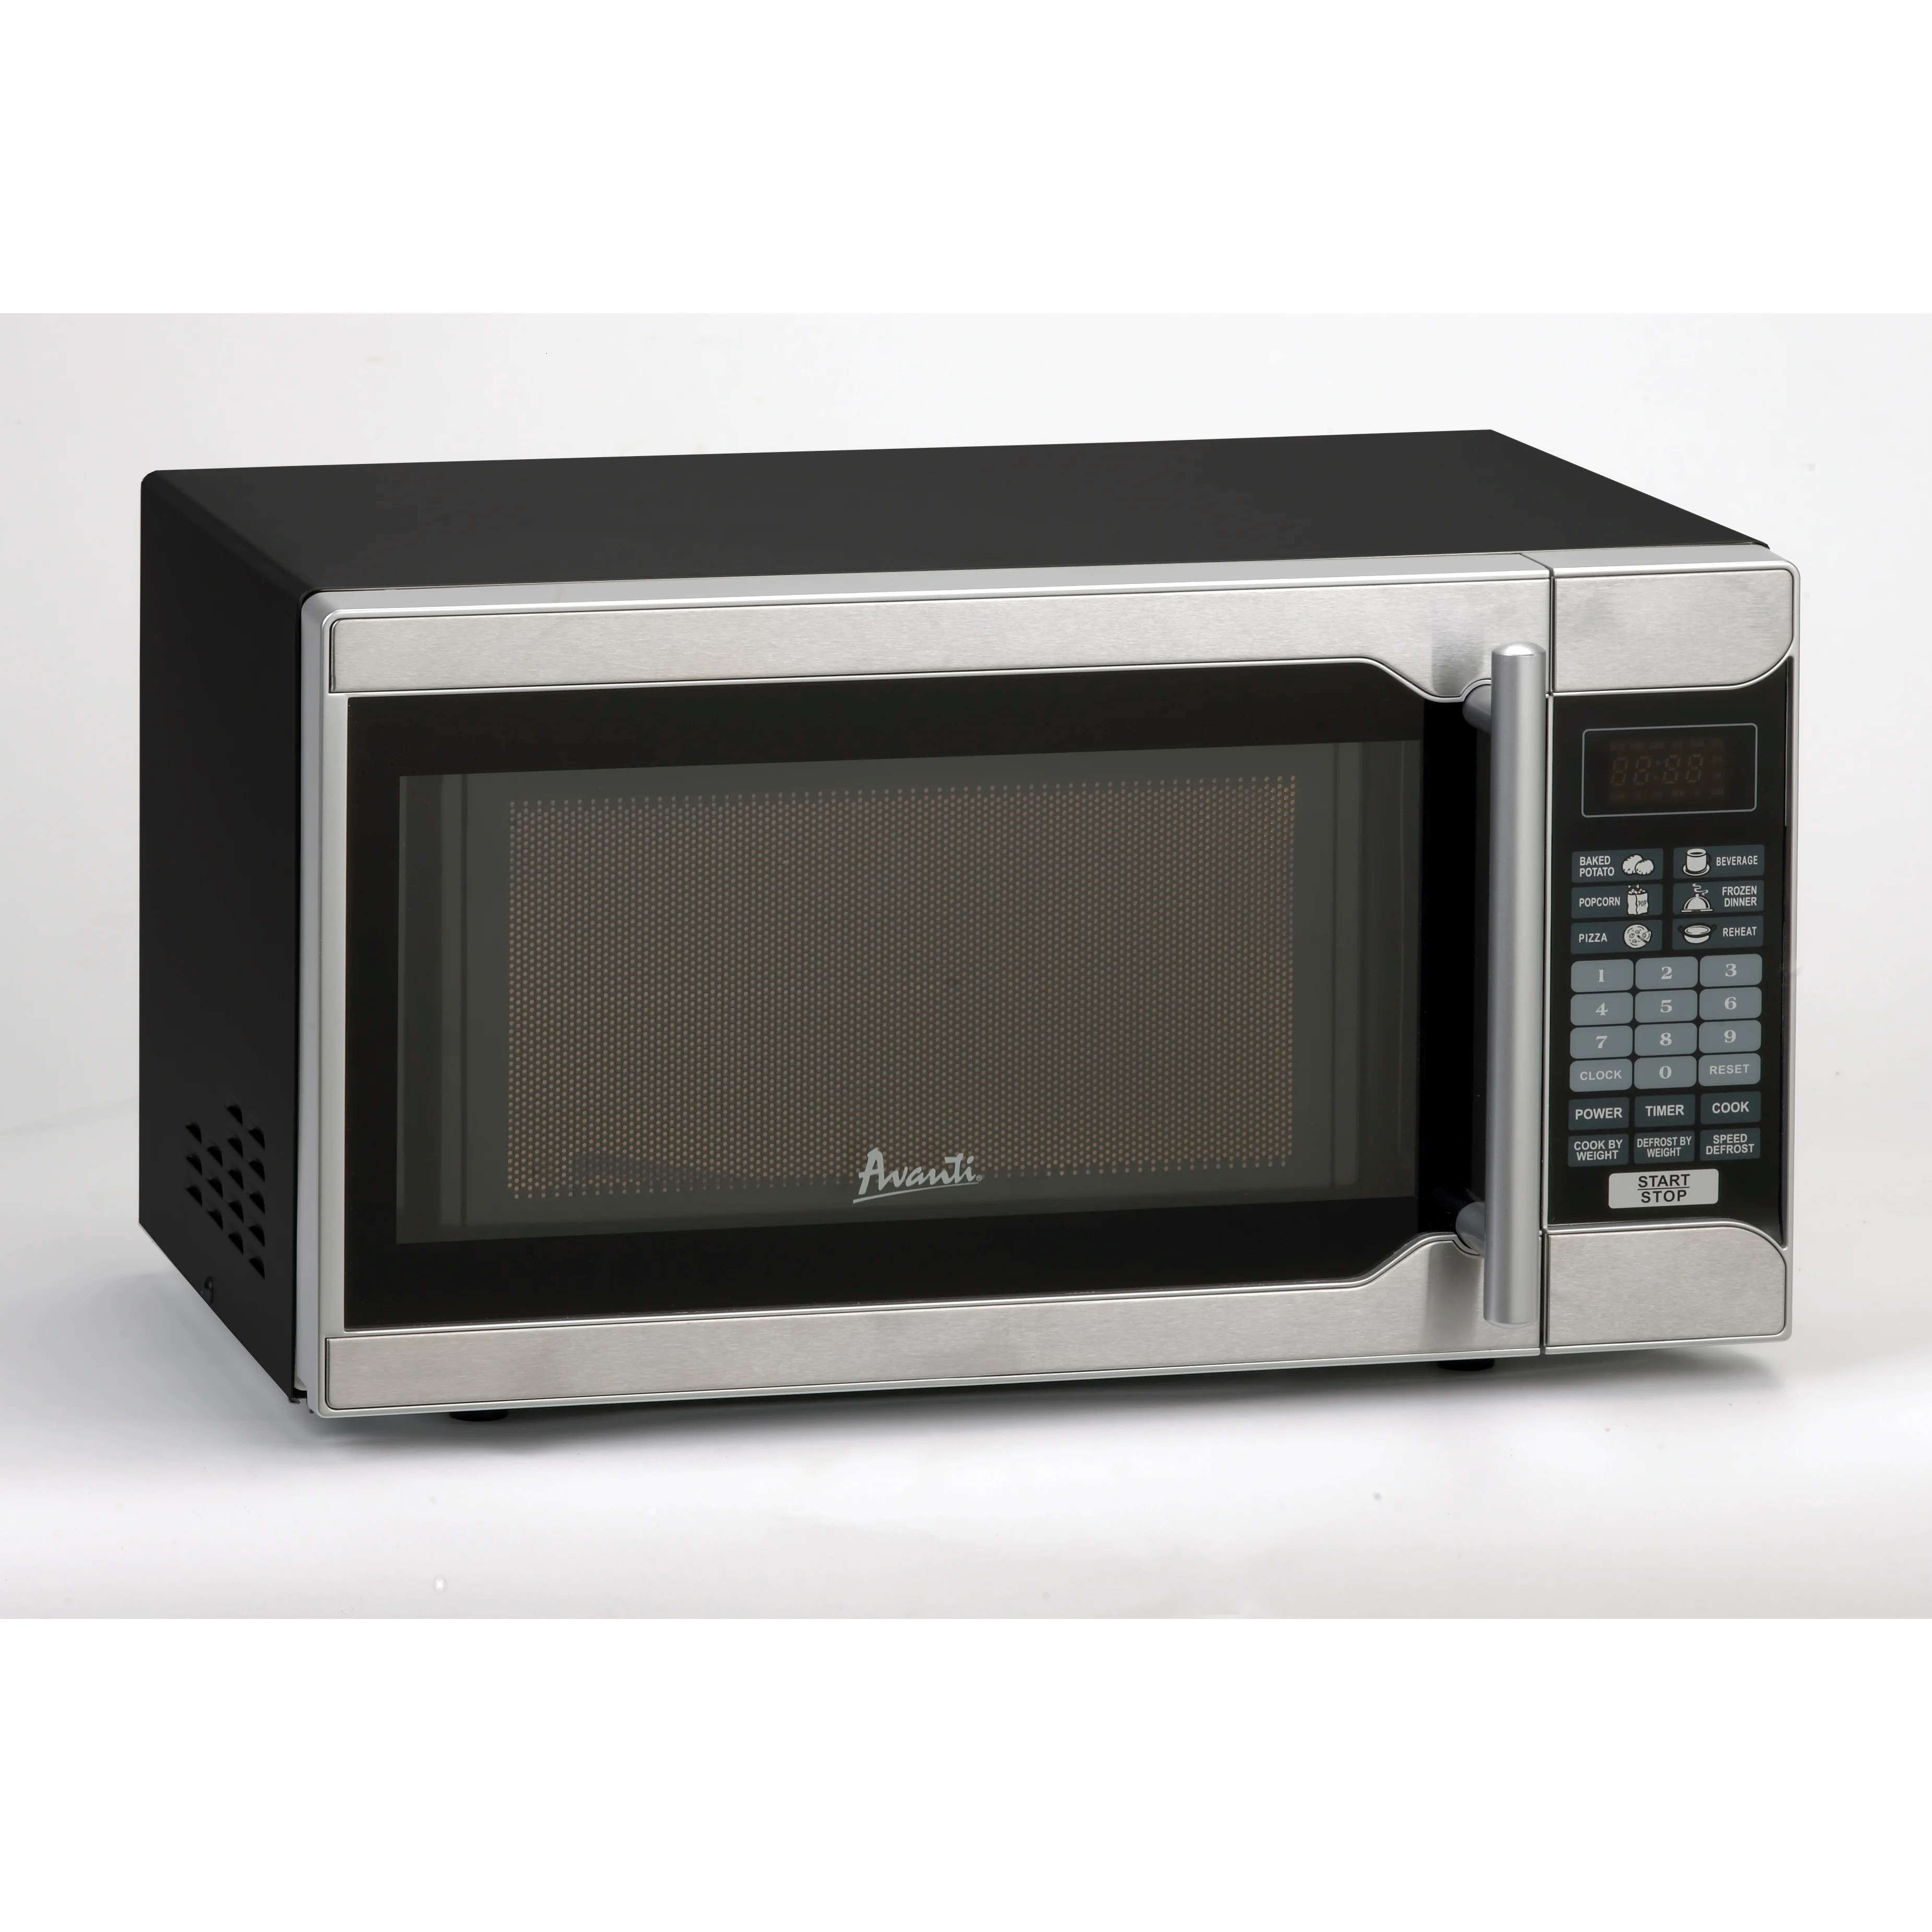 Avanti Countertop Dishwasher Avanti 7 Cu Ft 700w Countertop Microwave And Reviews